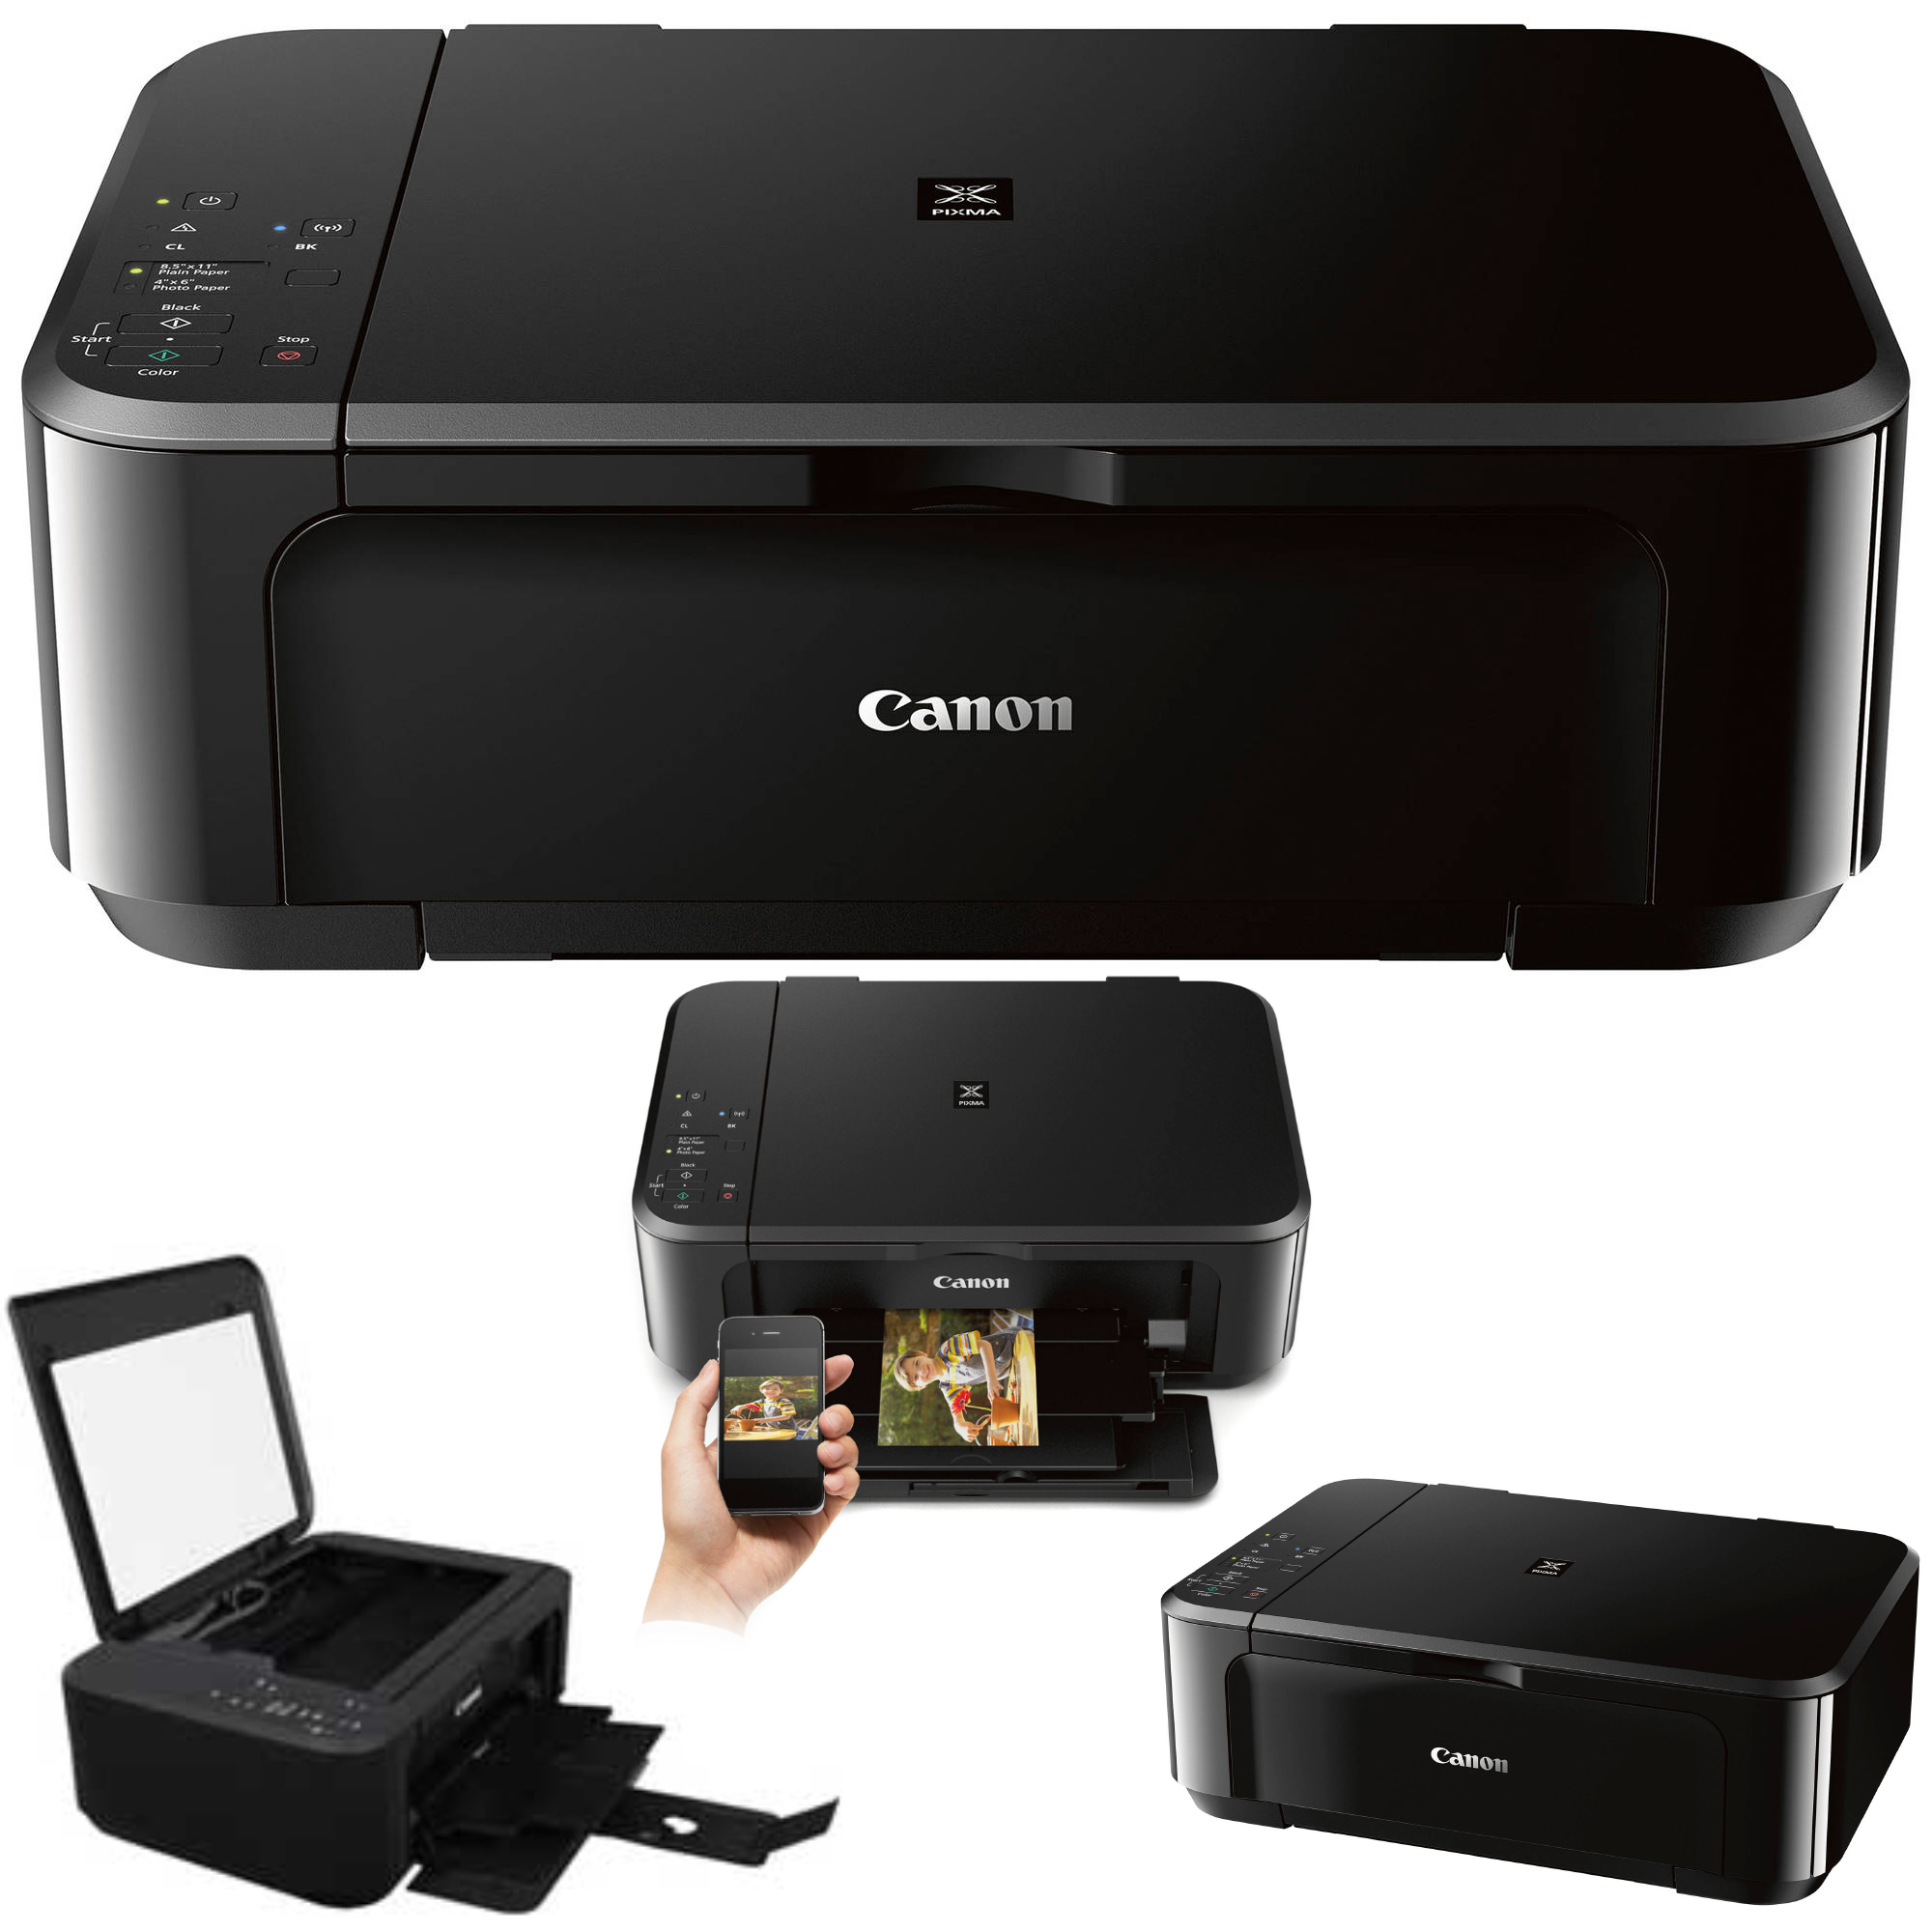 Canon Pixma Mg3620 Wireless Inkjet All In One Wireless Printer Ink